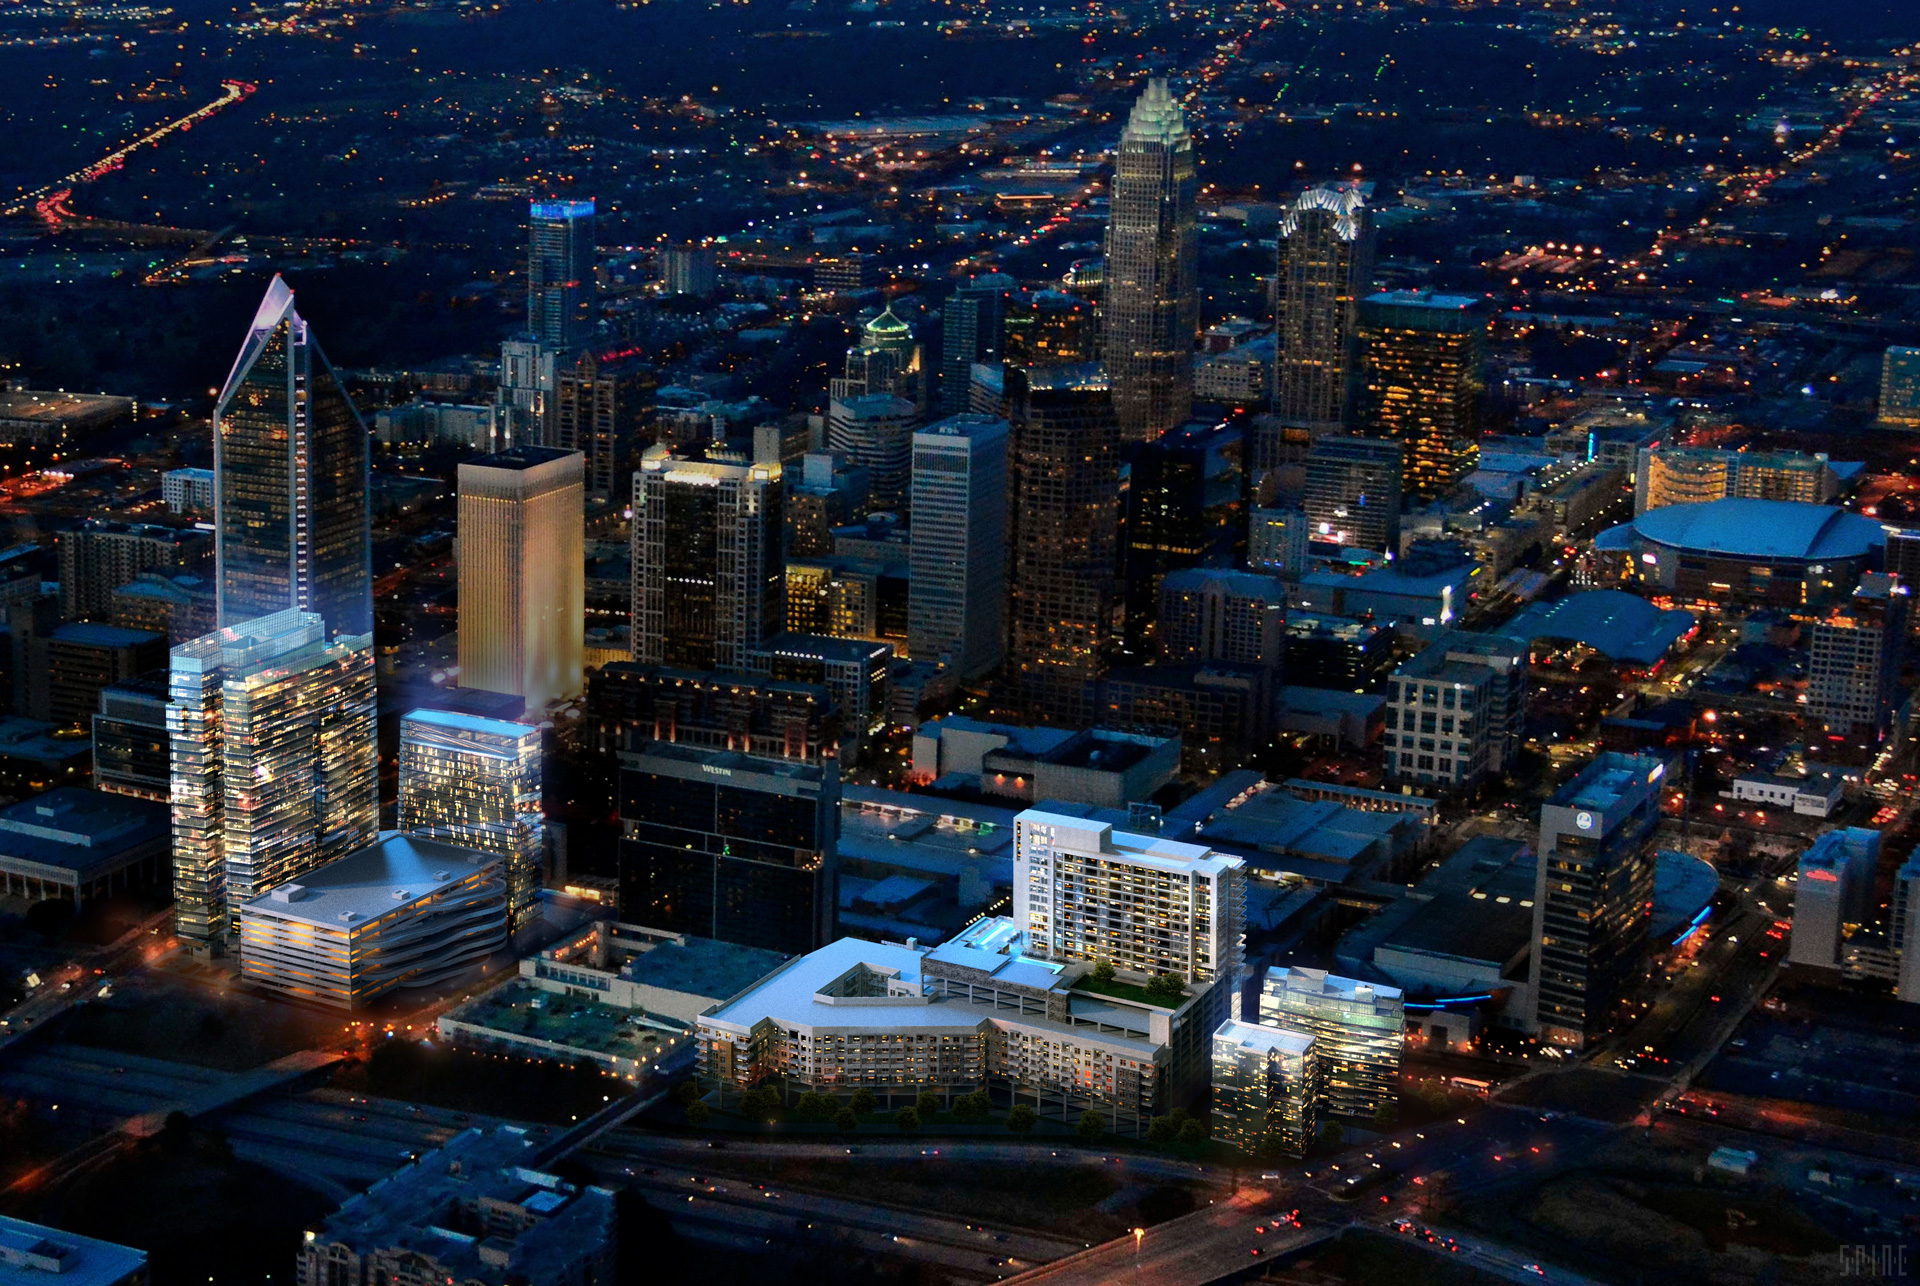 CHARLOTTE HAPPENINGS – A City on the Rise